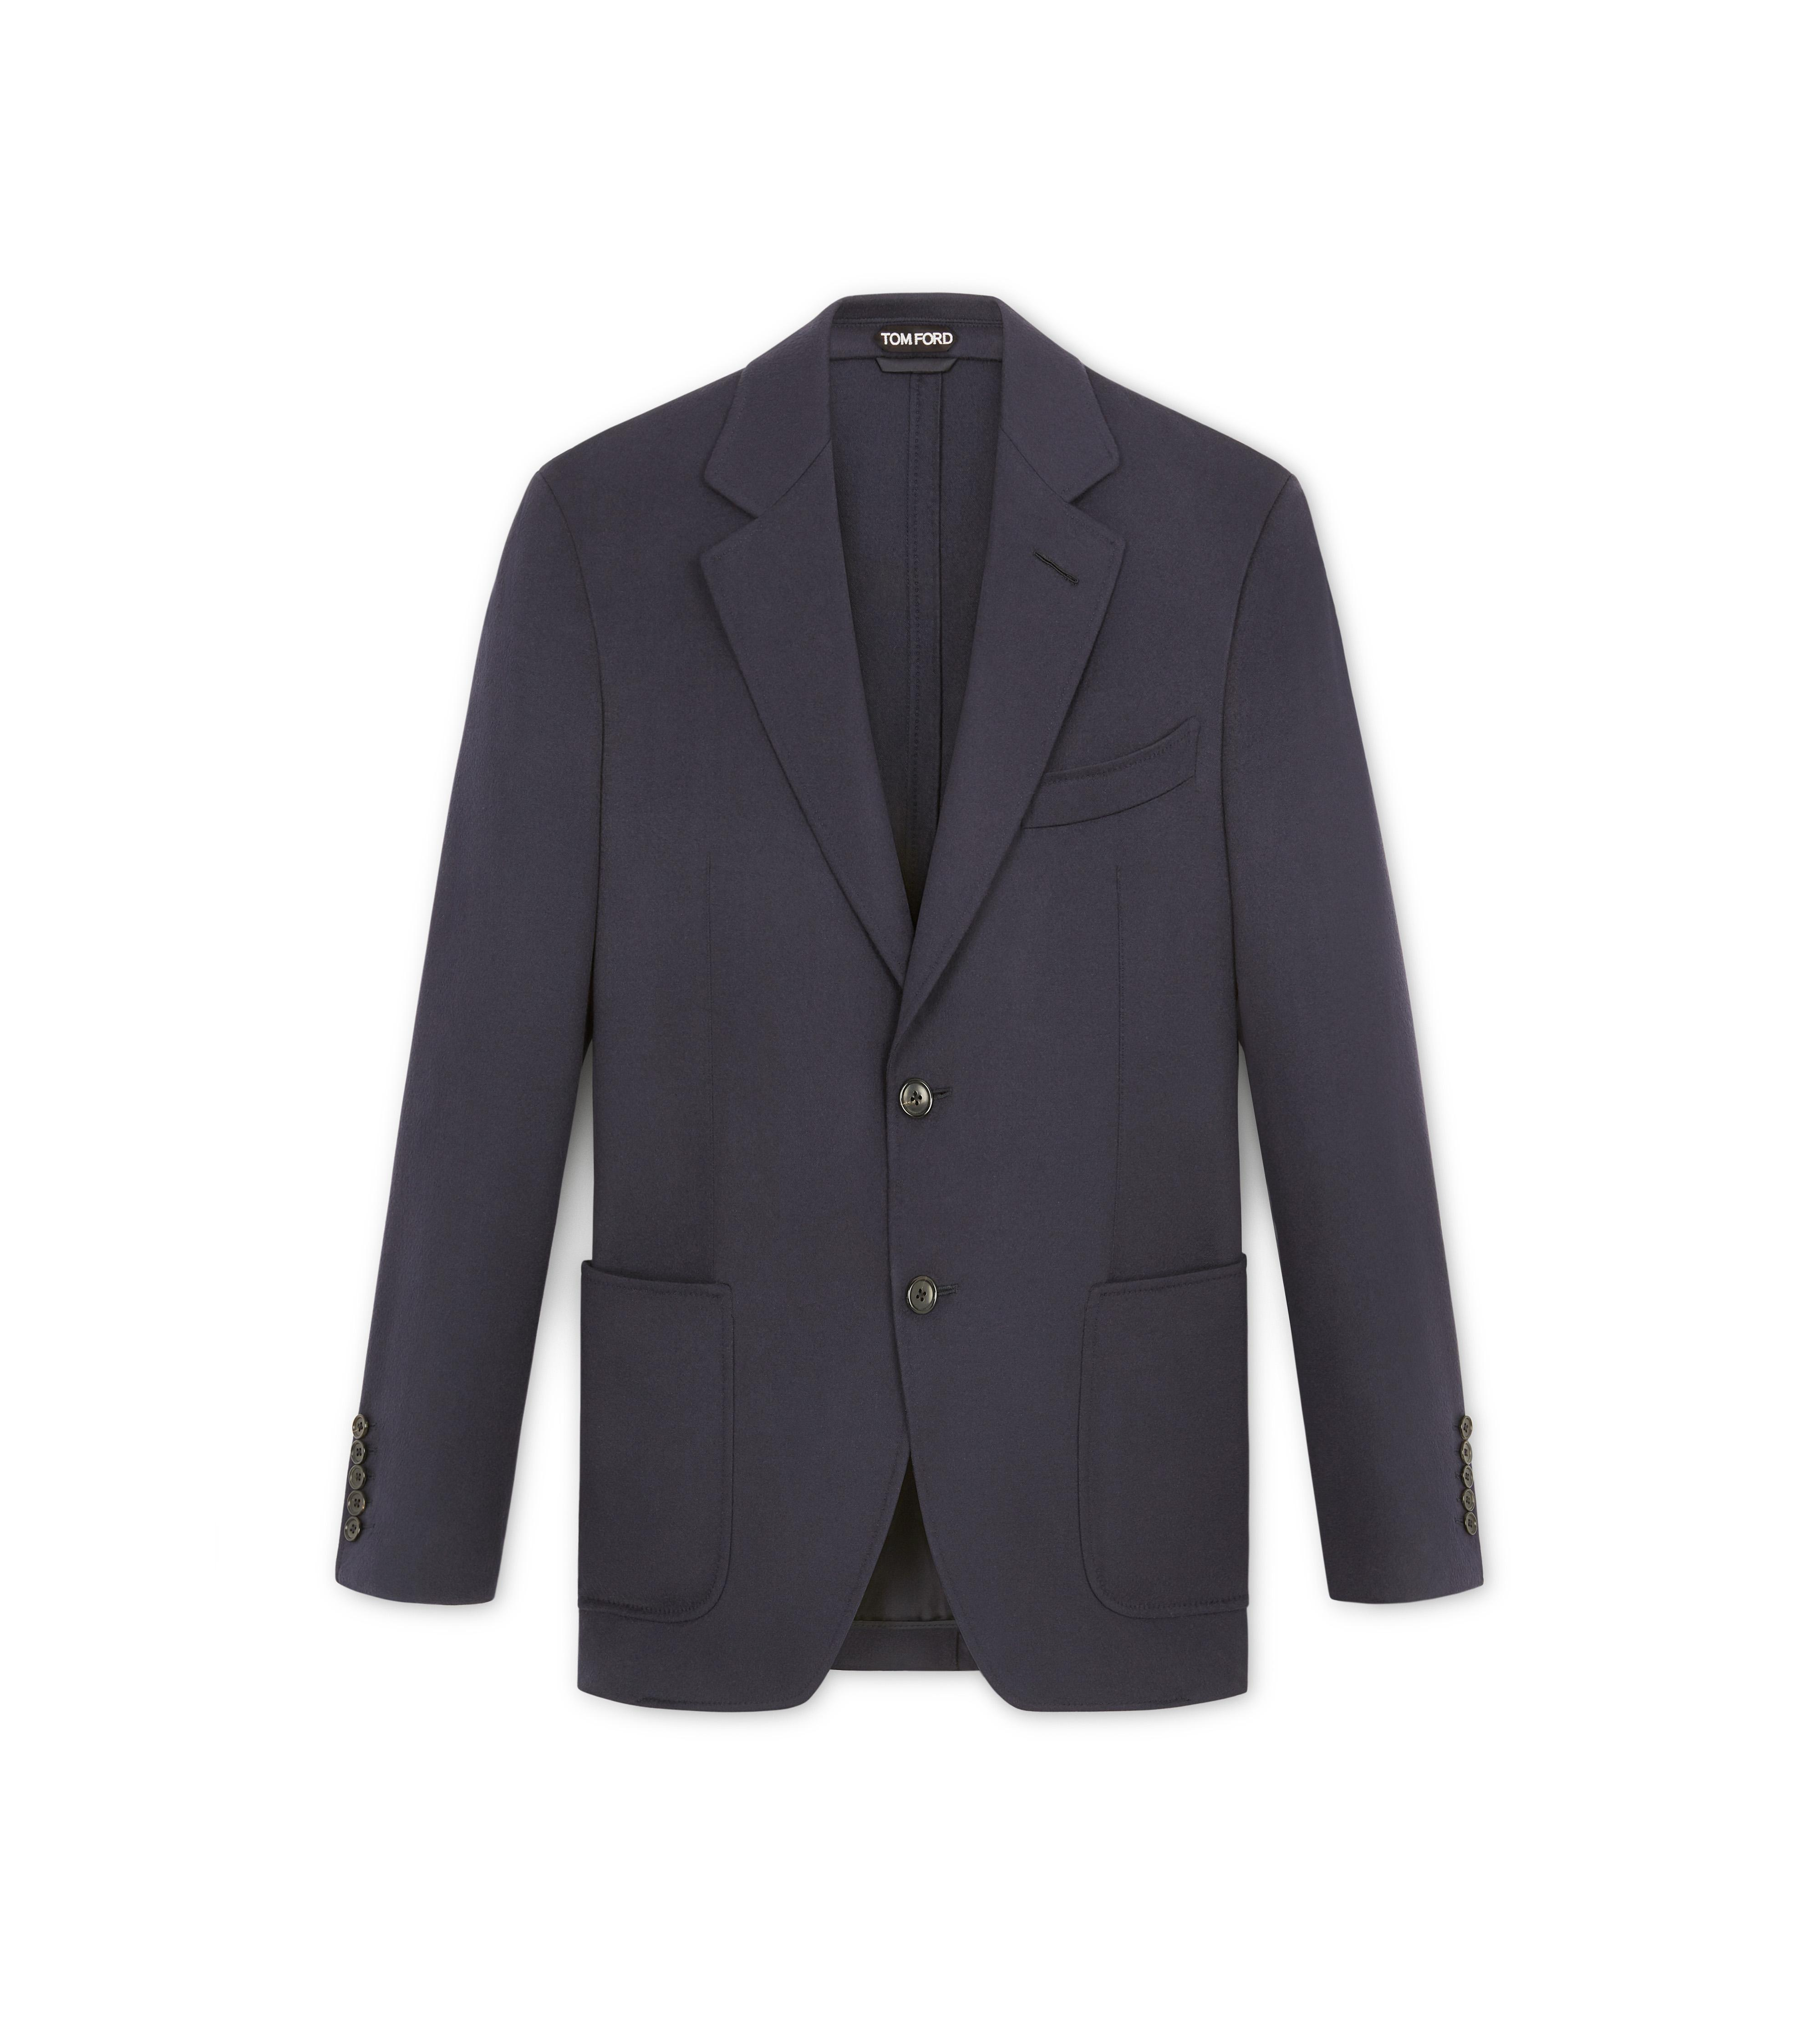 NAVY BRUSHED CASHMERE SHELTON SPORT JACKET A thumbnail